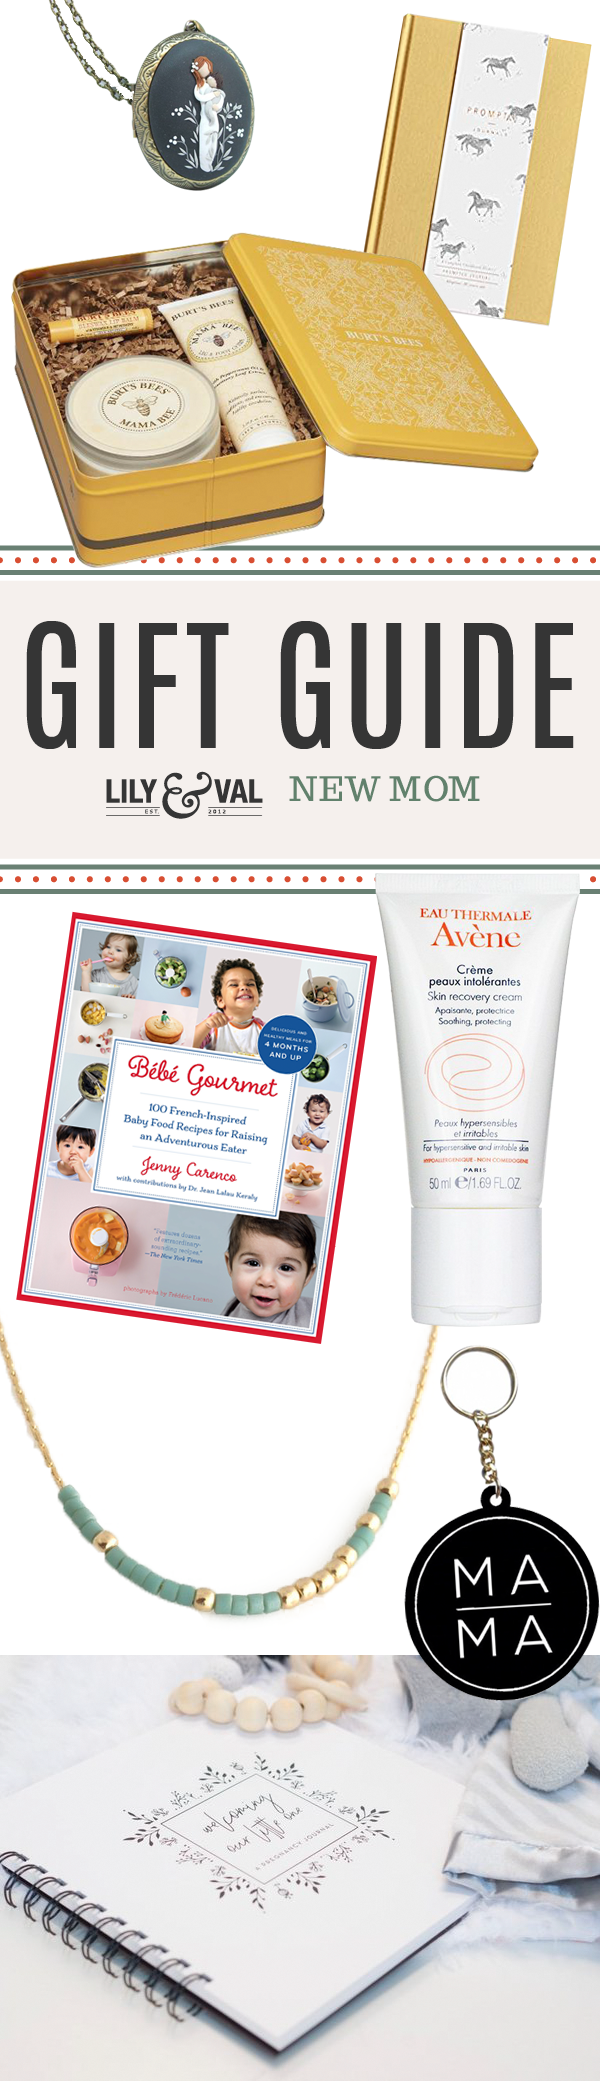 Lily & Val Gift Guide: New Mom